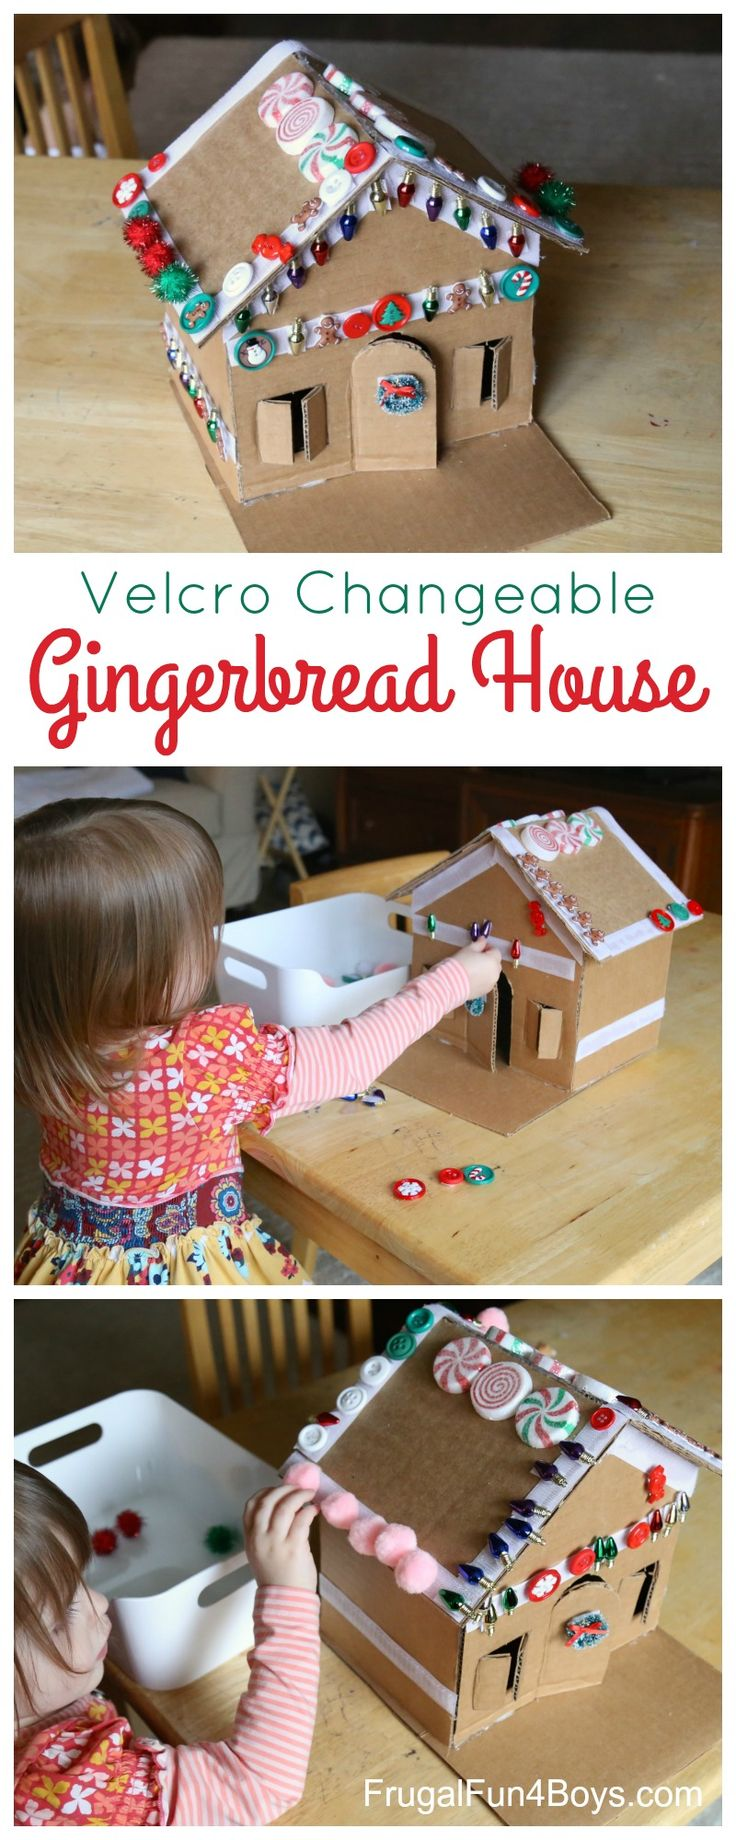 Decorate (and Redecorate) this Adorable Velcro Gingerbread House! Fun Christmas activity for preschoolers.